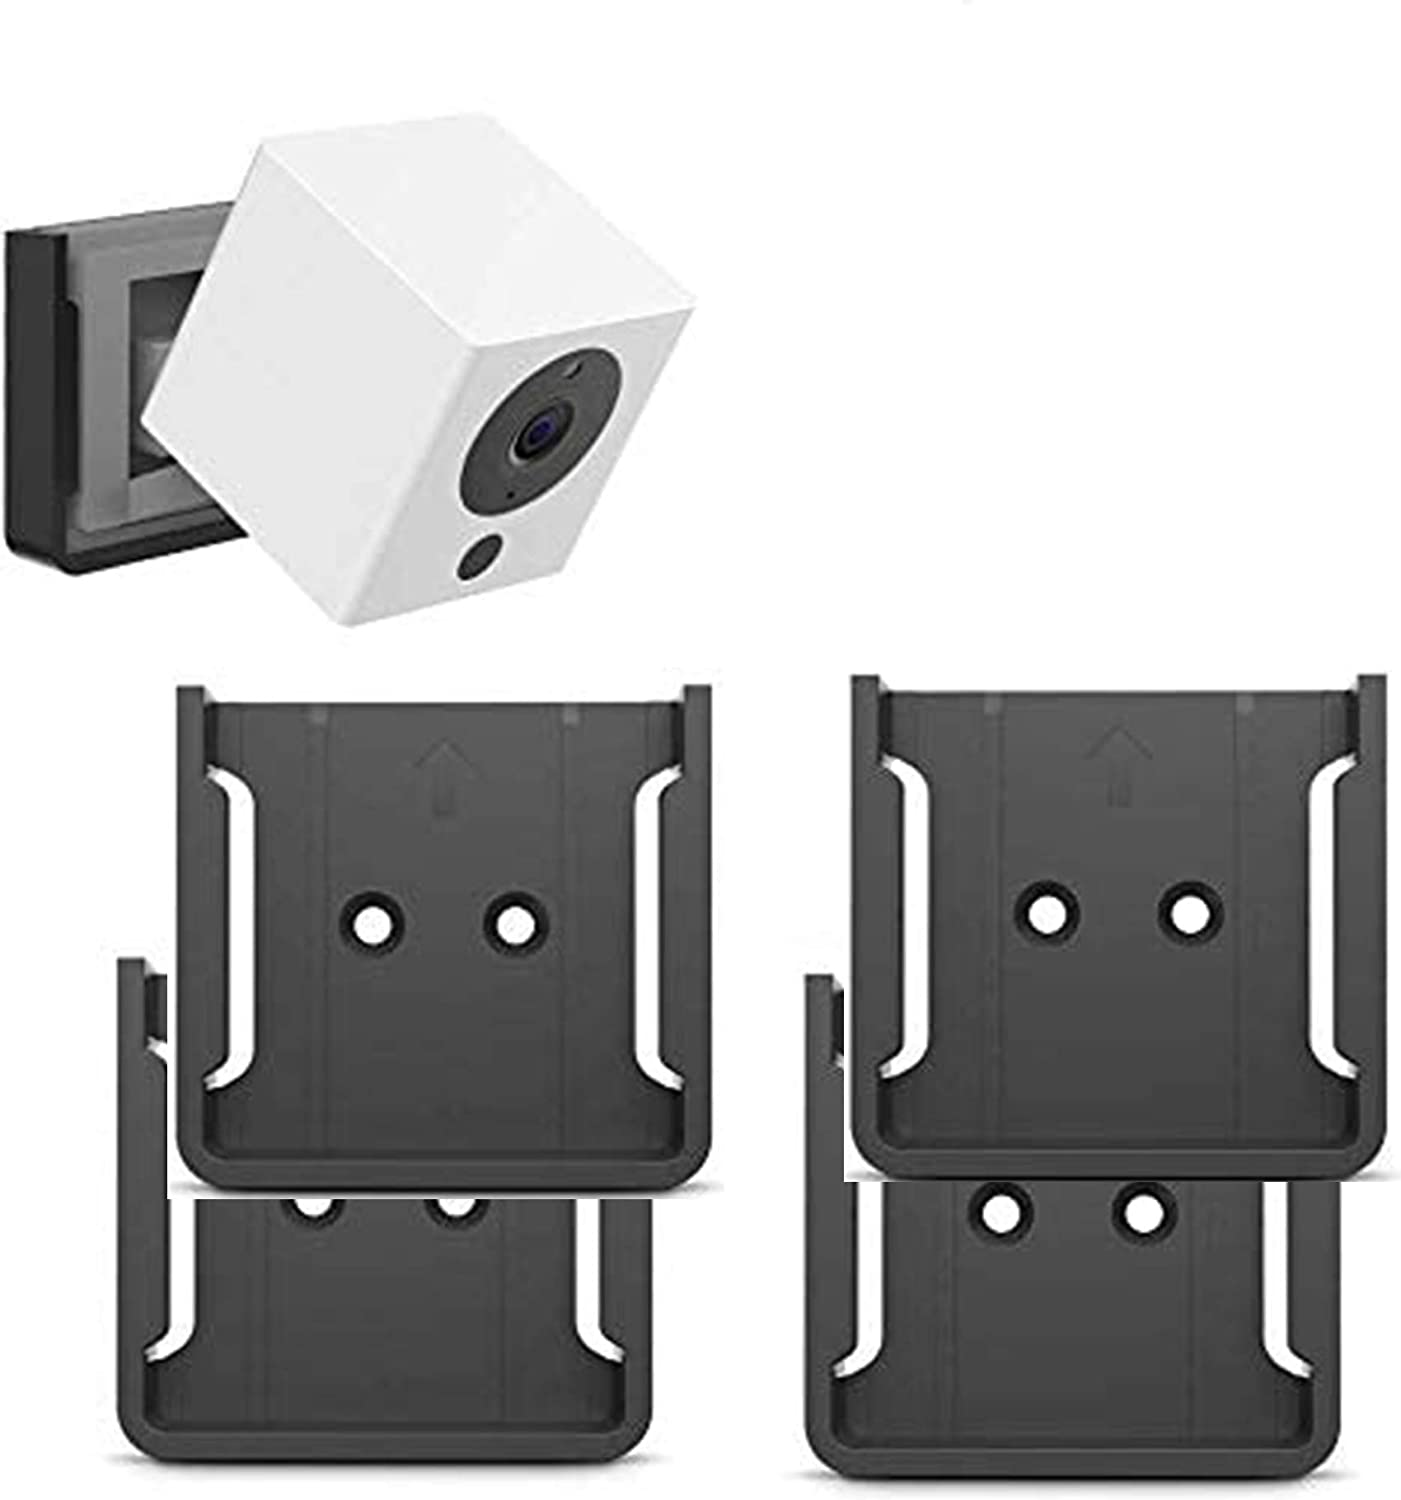 White Strong Adheasive Mount for Wyze Cam No Drilling No Mess Easy to Install 2PACK Wall Mount Kit for Wyze Cam V2//V1 with Screwless and VHB Stick On No Tools Needed